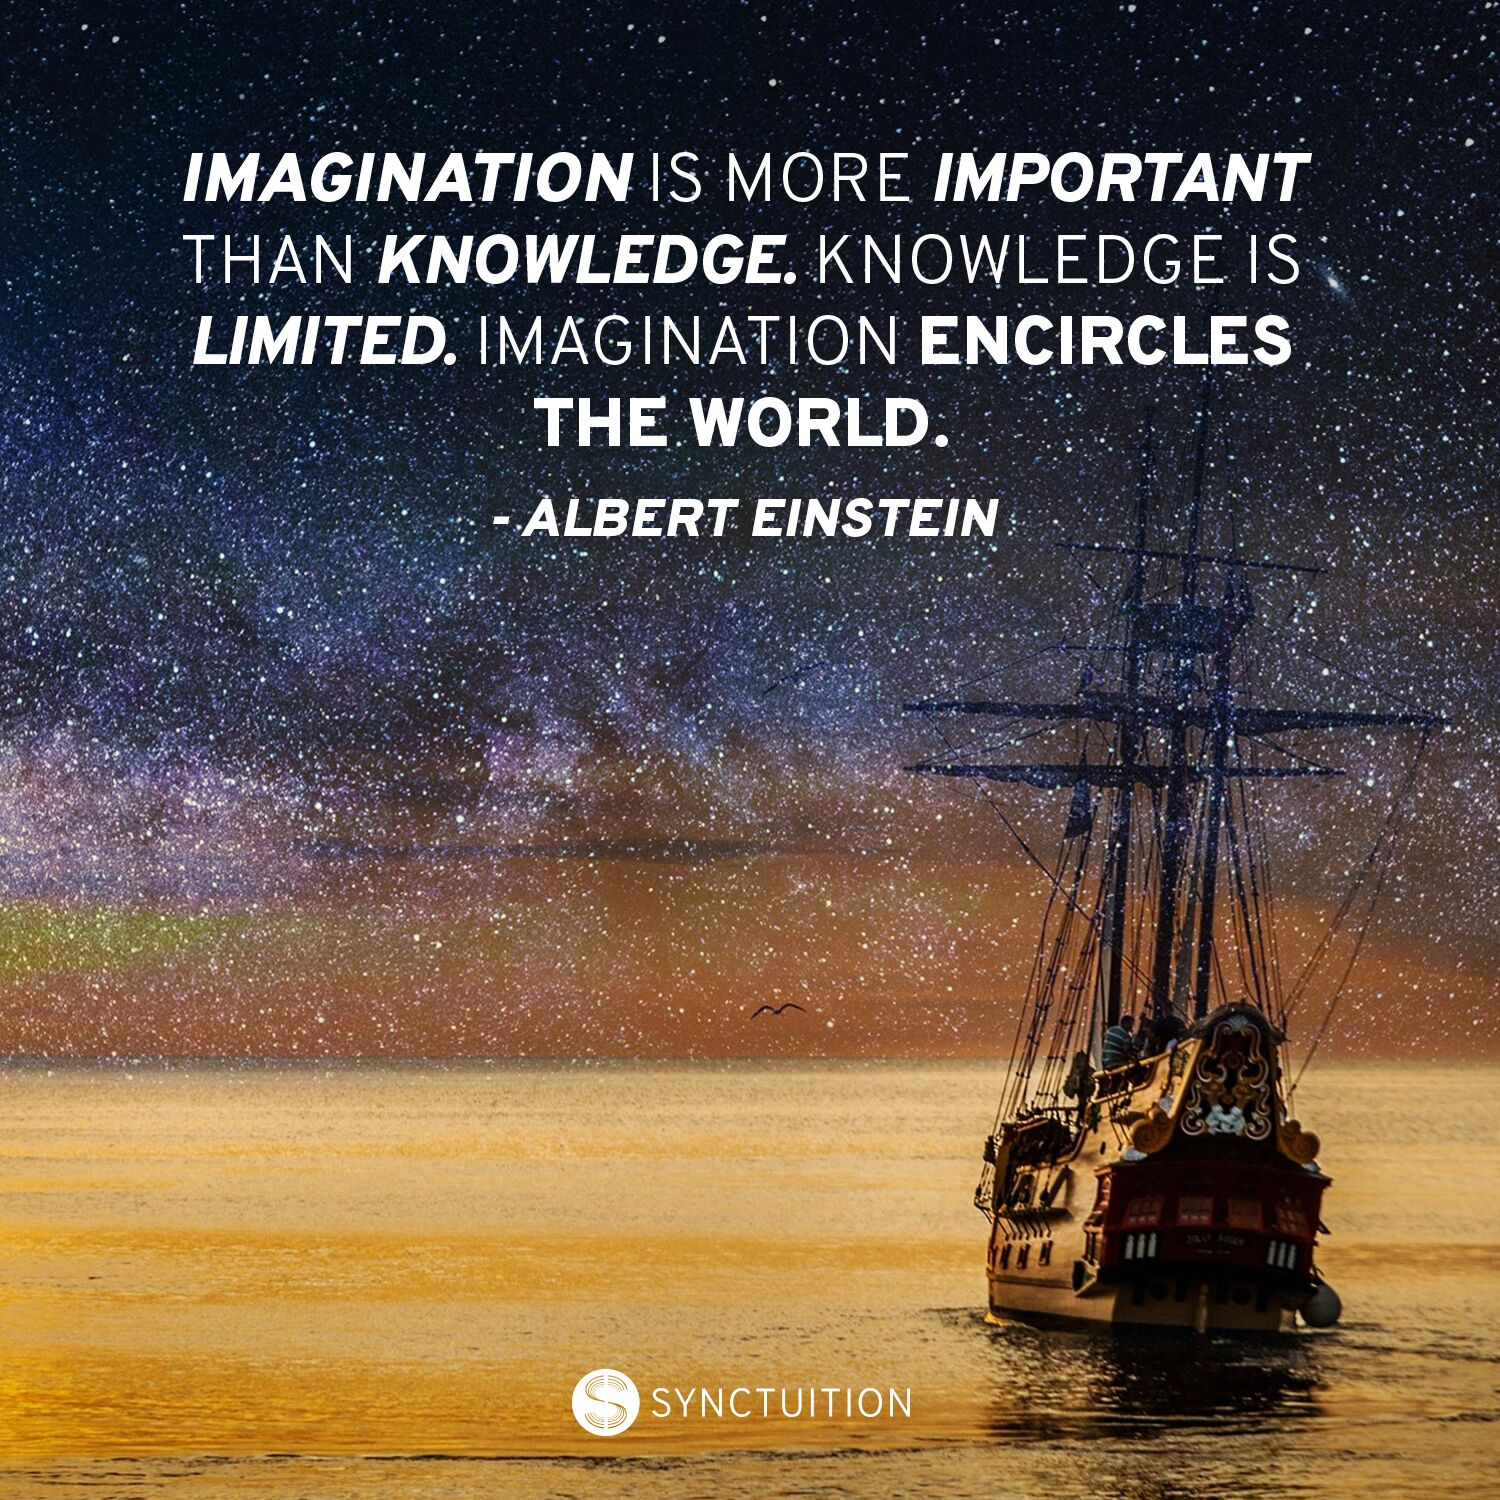 Quote on knowledge and imagination by Albert Einstein on a sea view